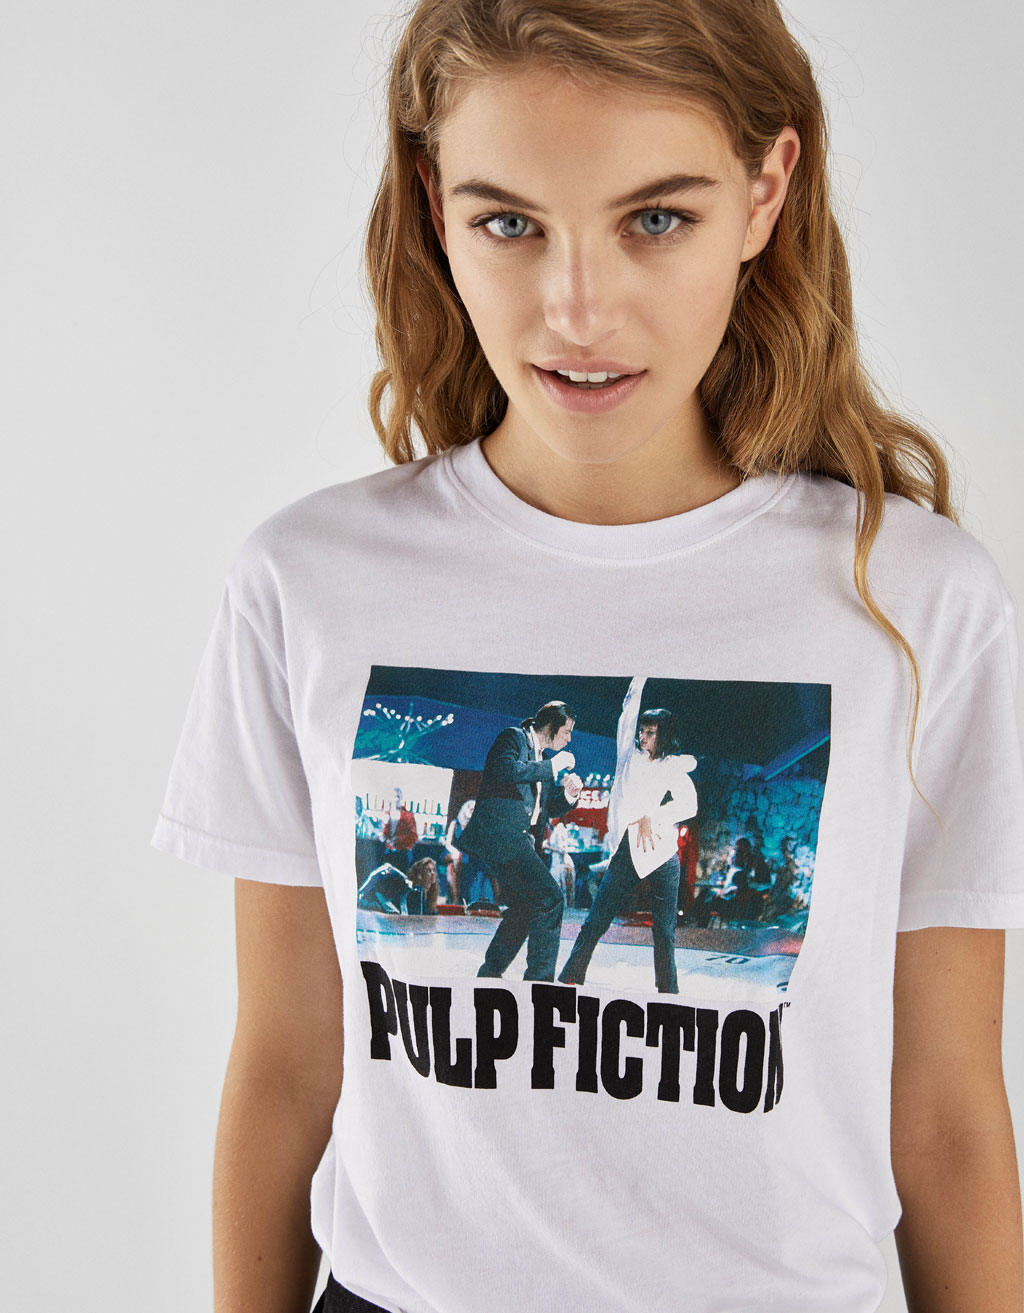 Kamiseta, Pulp Fiction